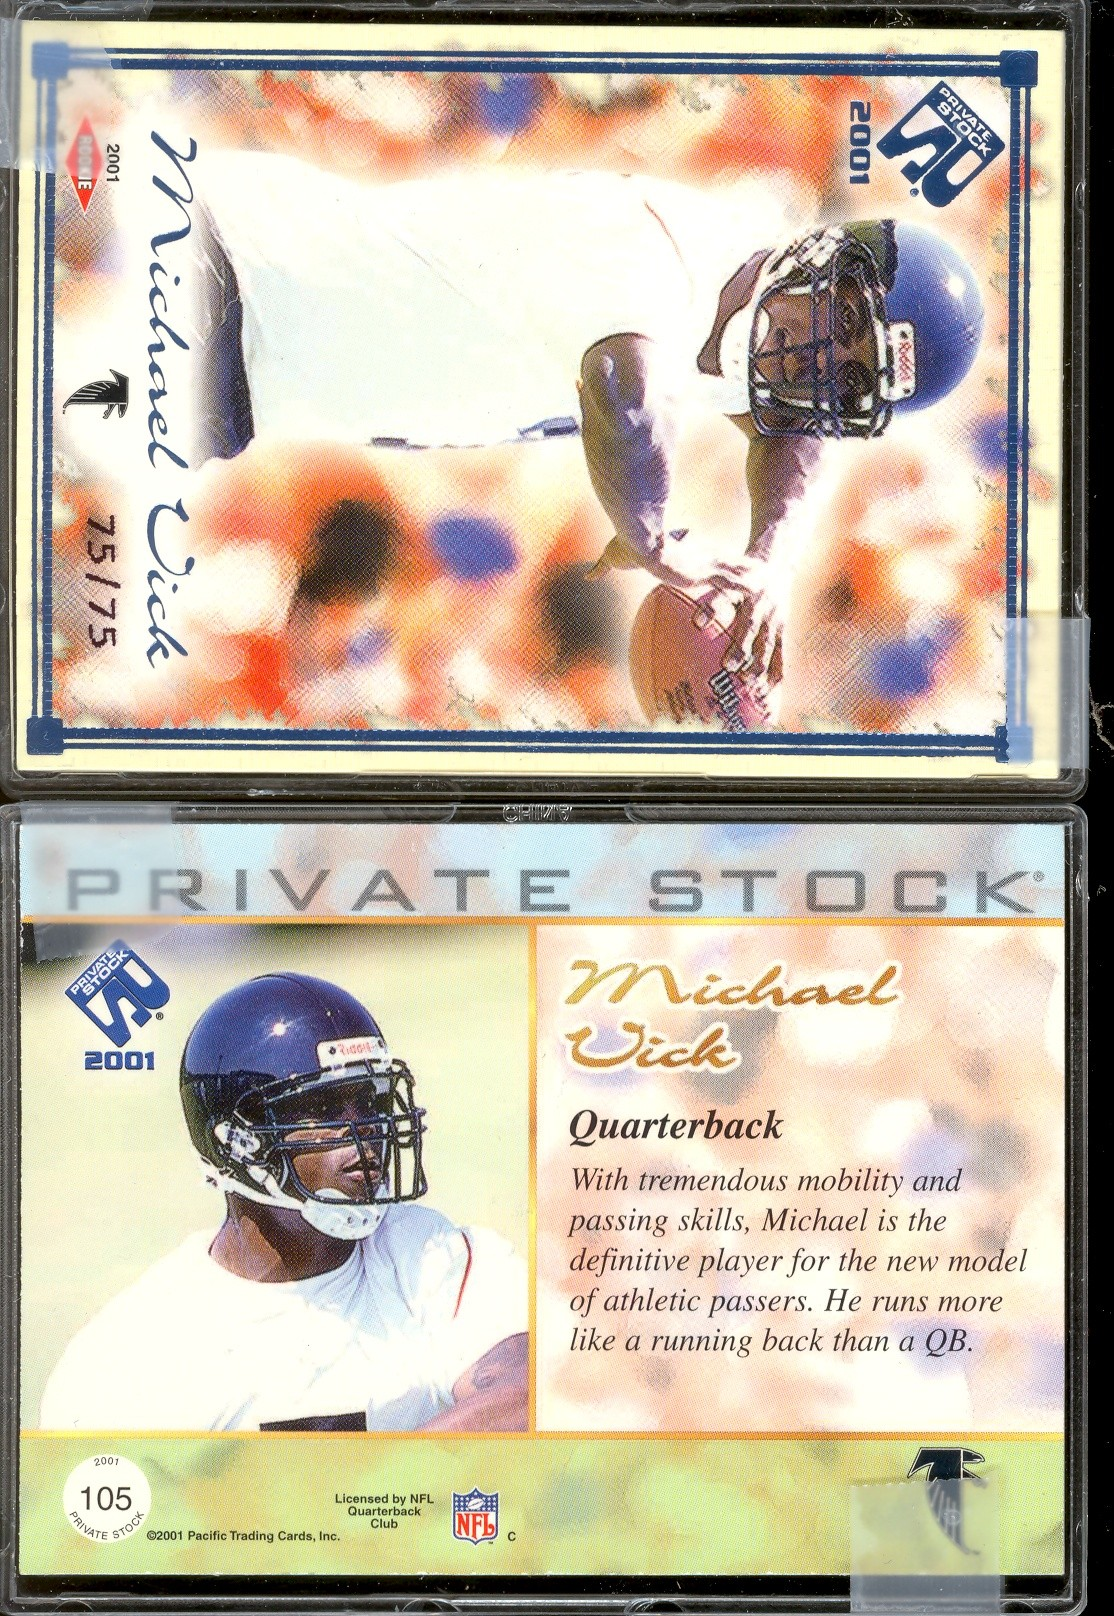 2001 Private Stock Blue Framed #105 Michael Vick